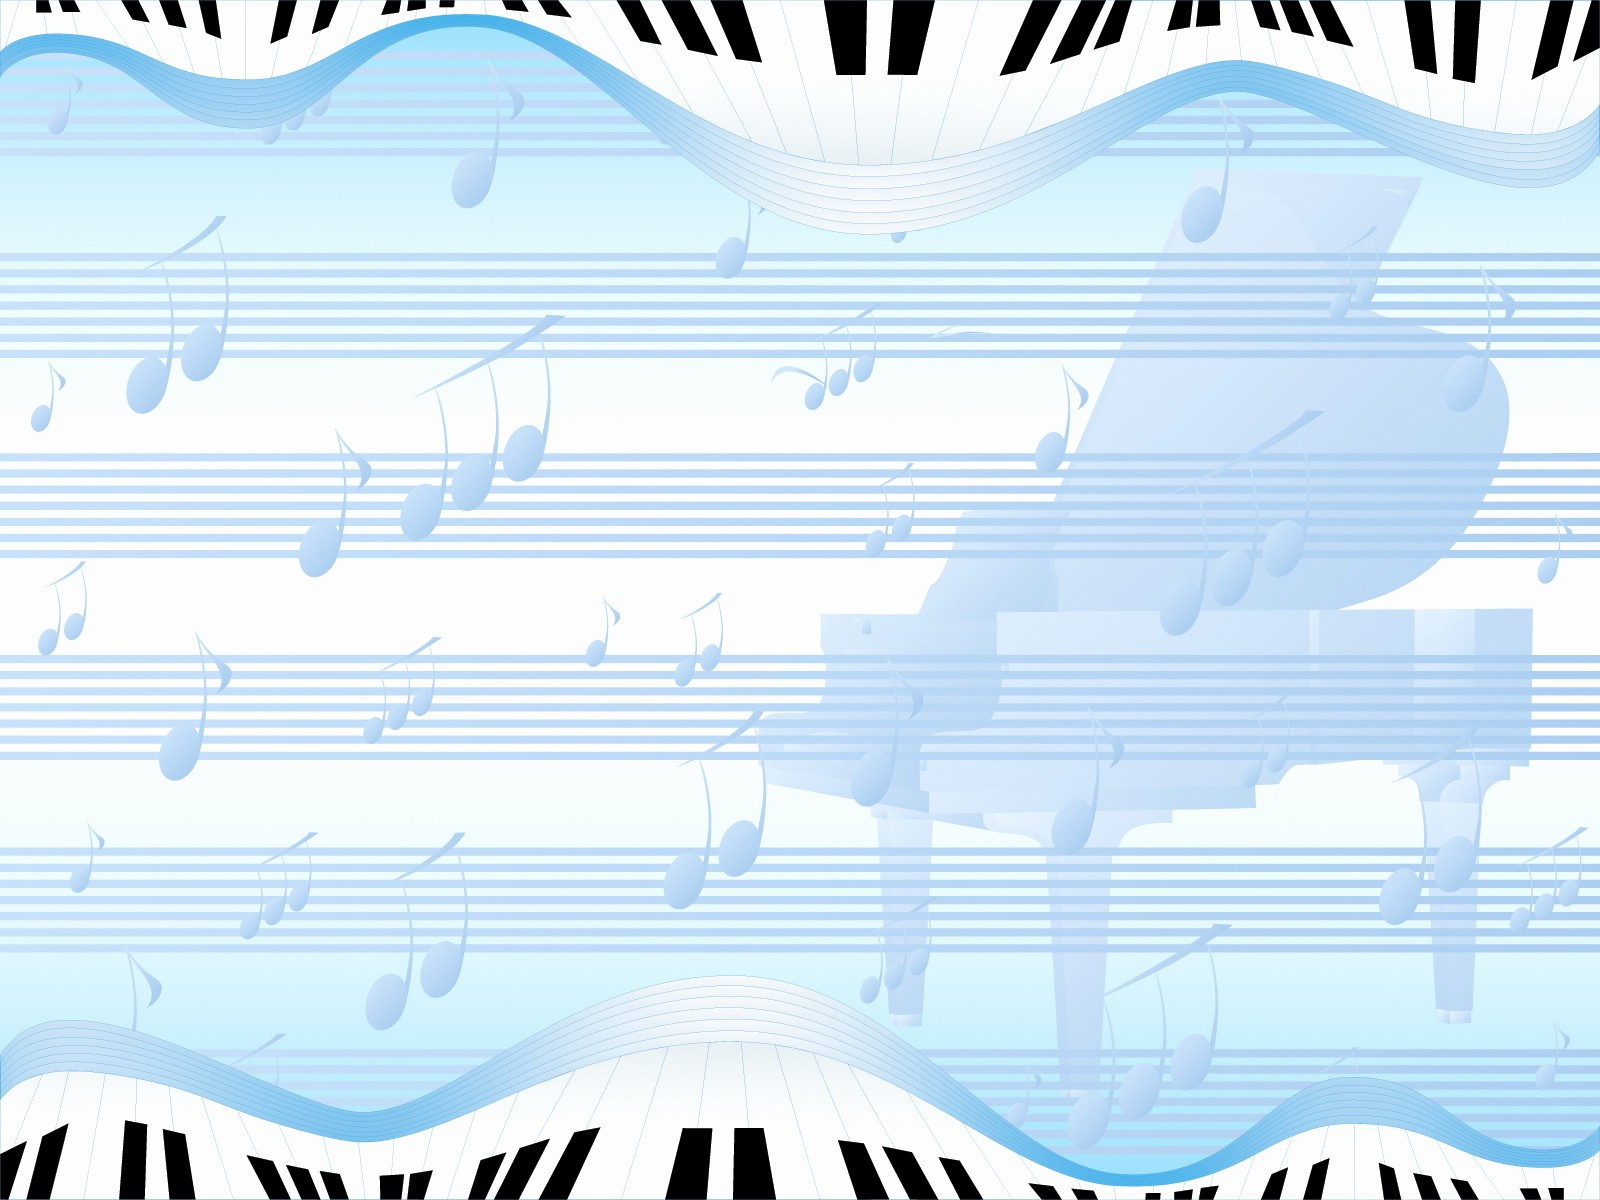 Free Downloadable Powerpoint Presentation Templates Elegant Piano Abstract Powerpoint Templates Abstract Blue